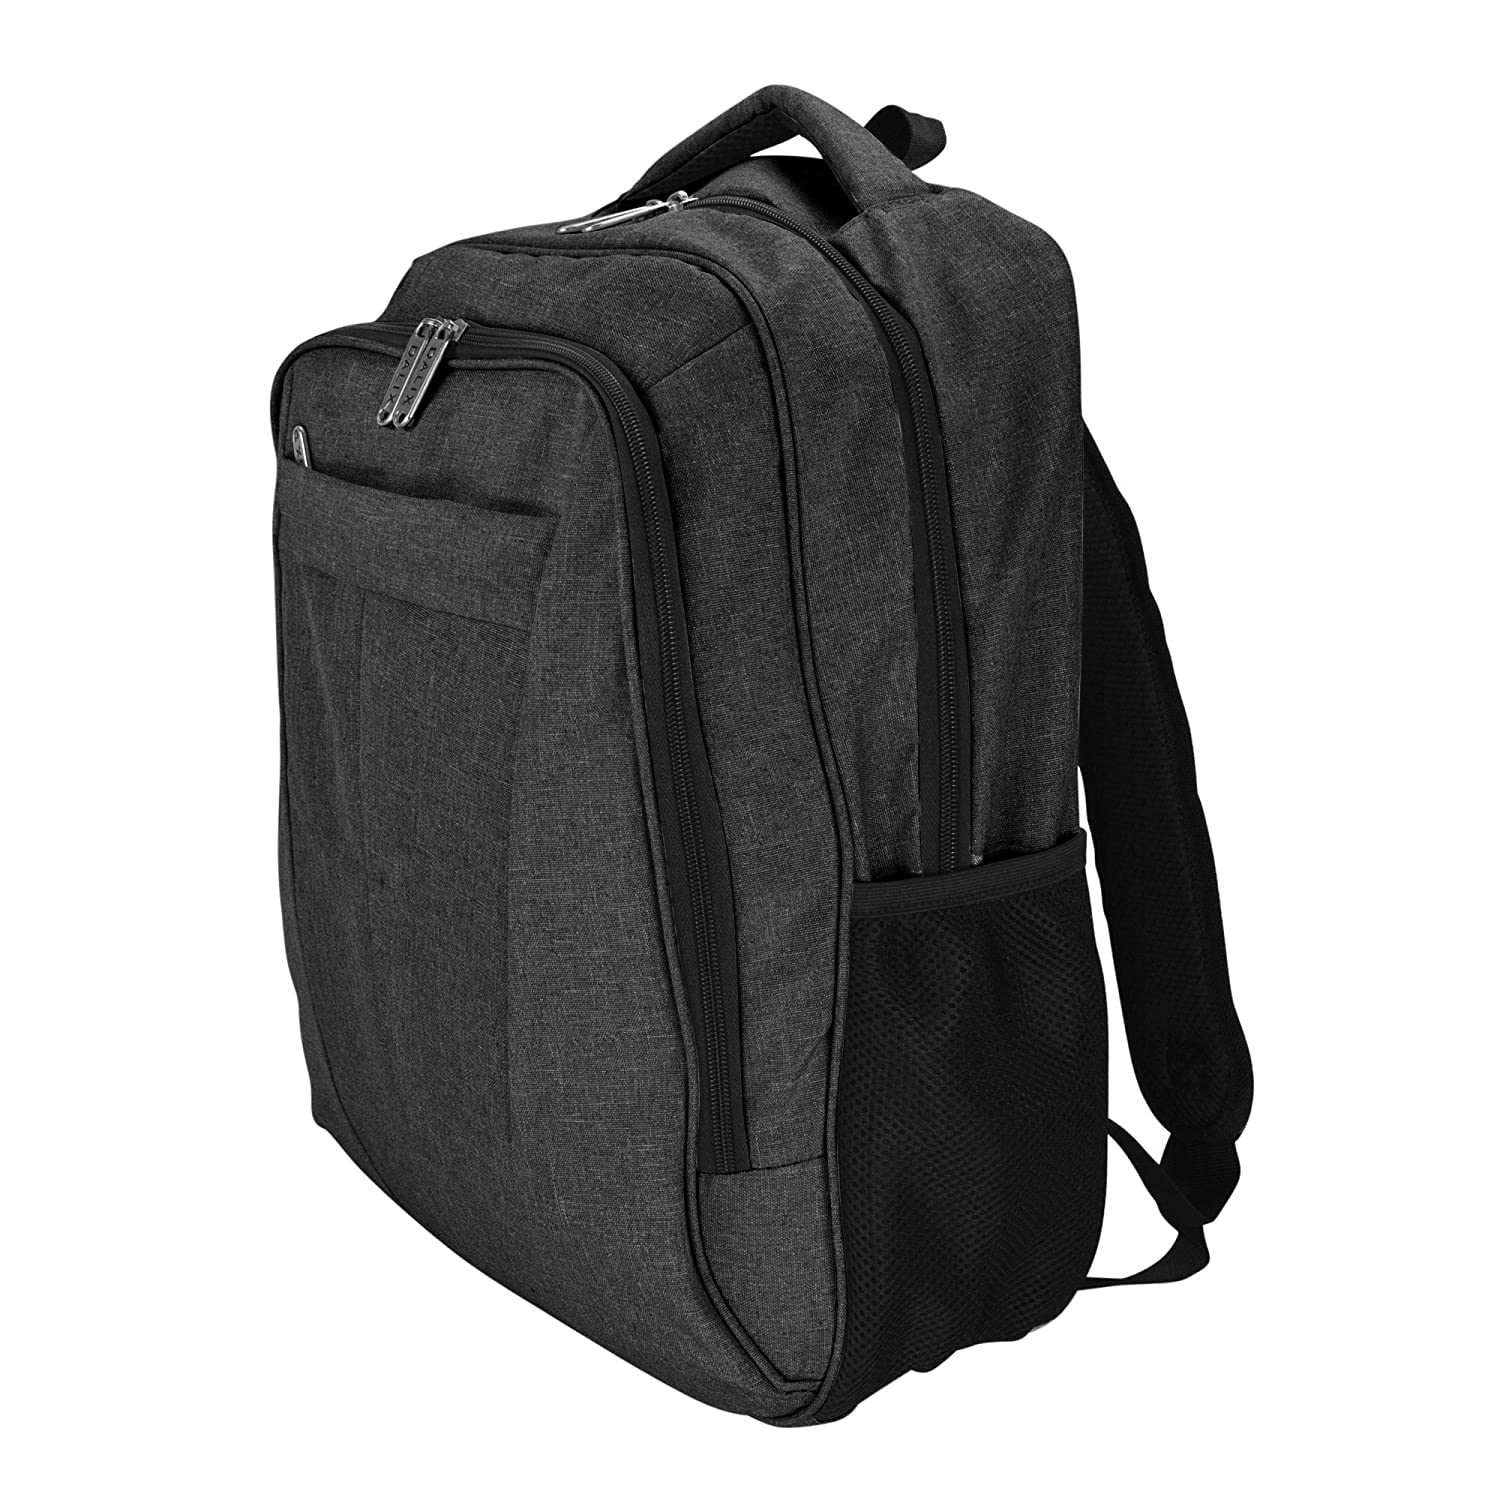 DALIX Signature Laptop Backpack with Multiple Pockets in Black 70%OFF